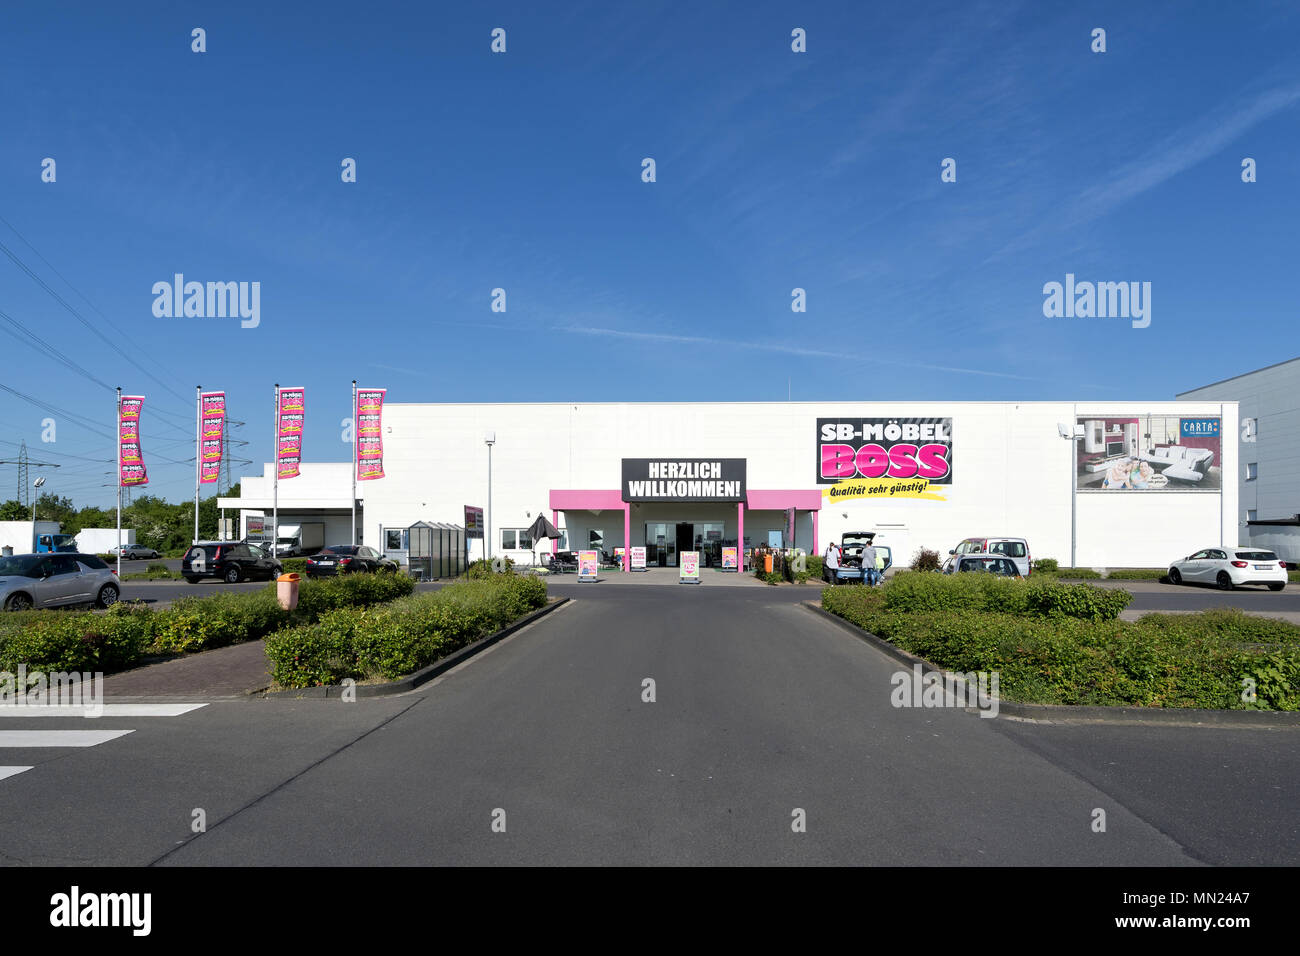 sb mobel boss furniture store in cologne germany mobel boss is a brand